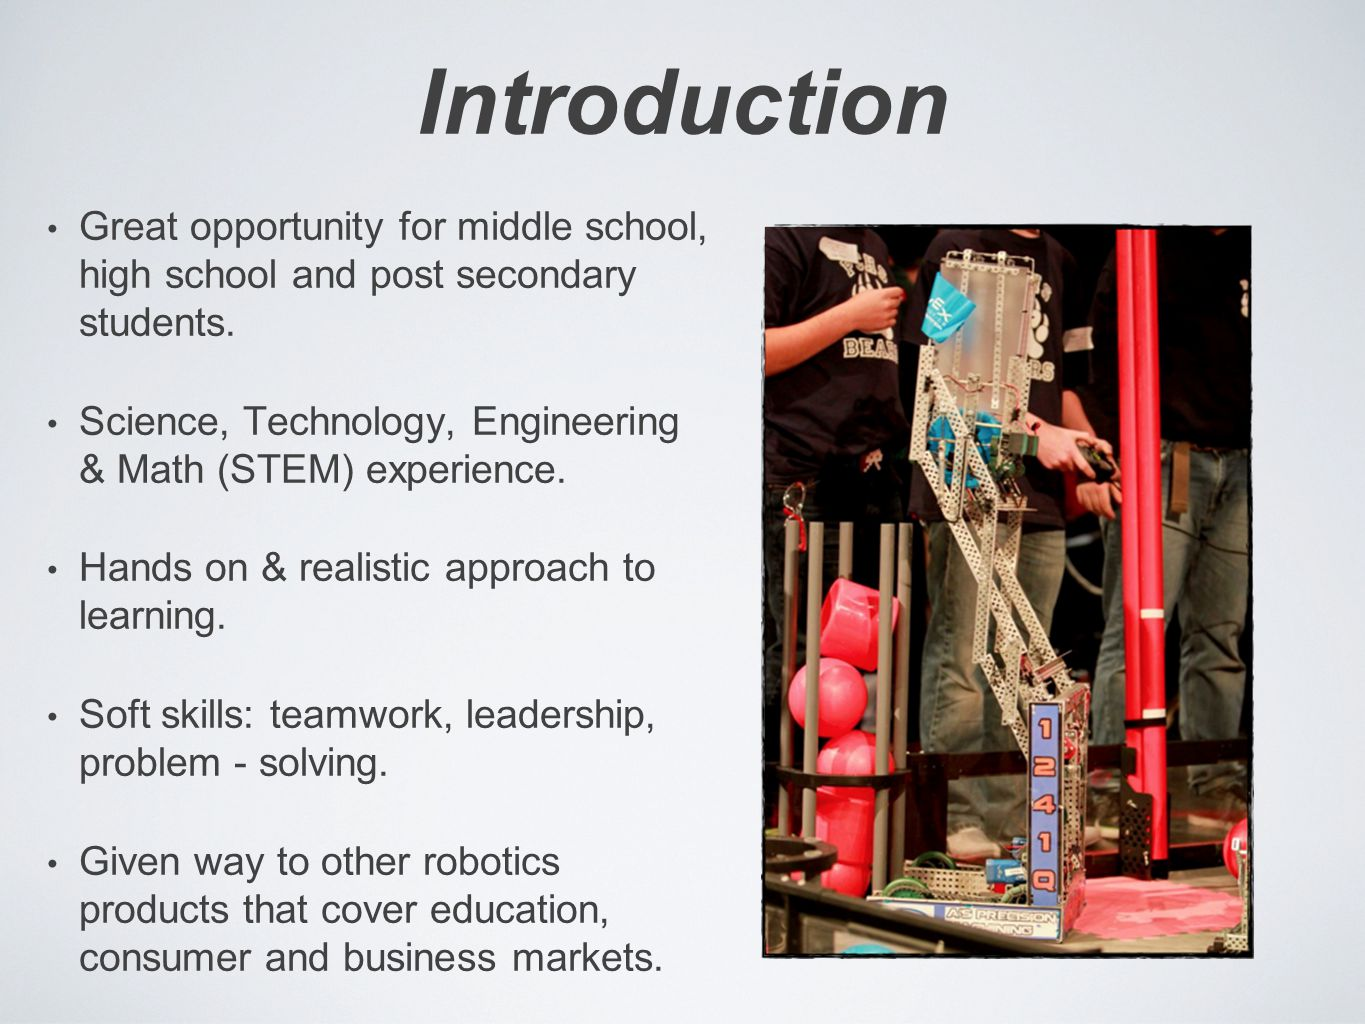 Great opportunity for middle school, high school and post secondary students. Science, Technology, Engineering & Math (STEM) experience. Hands on & re